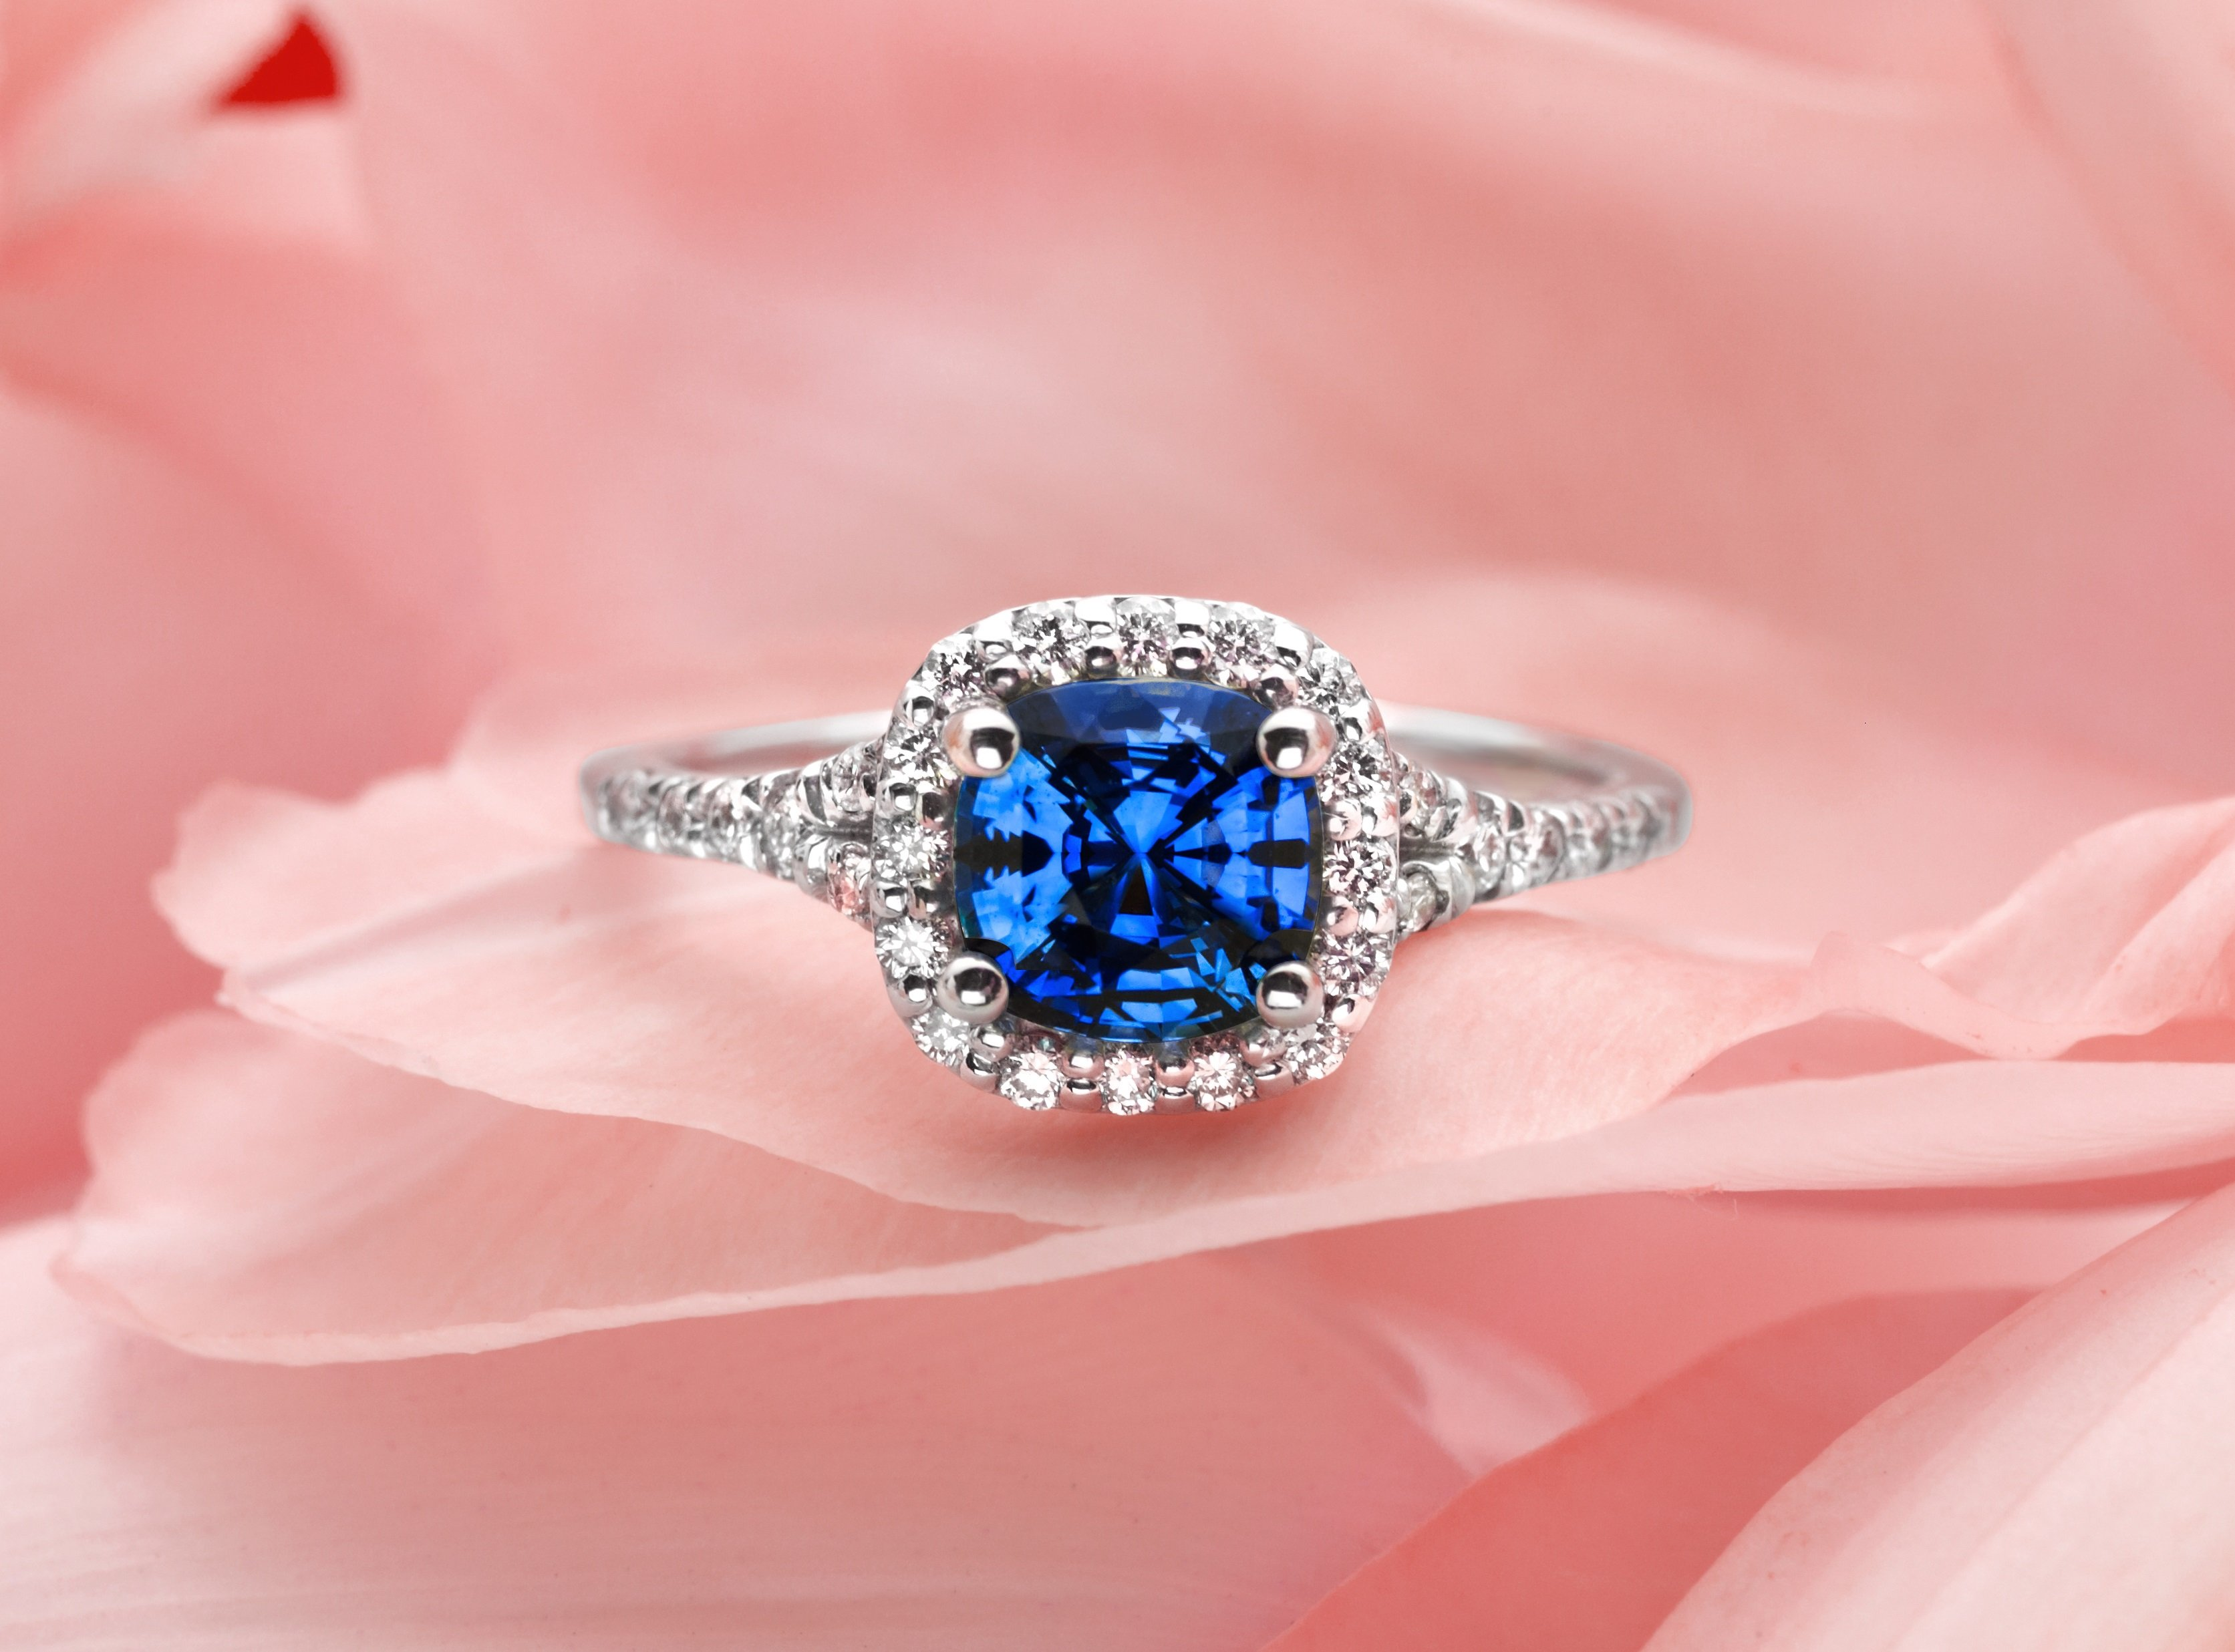 rings stewart sky colored colorful ring weddings engagement sapphire love blue martha diamond we vert featherstone